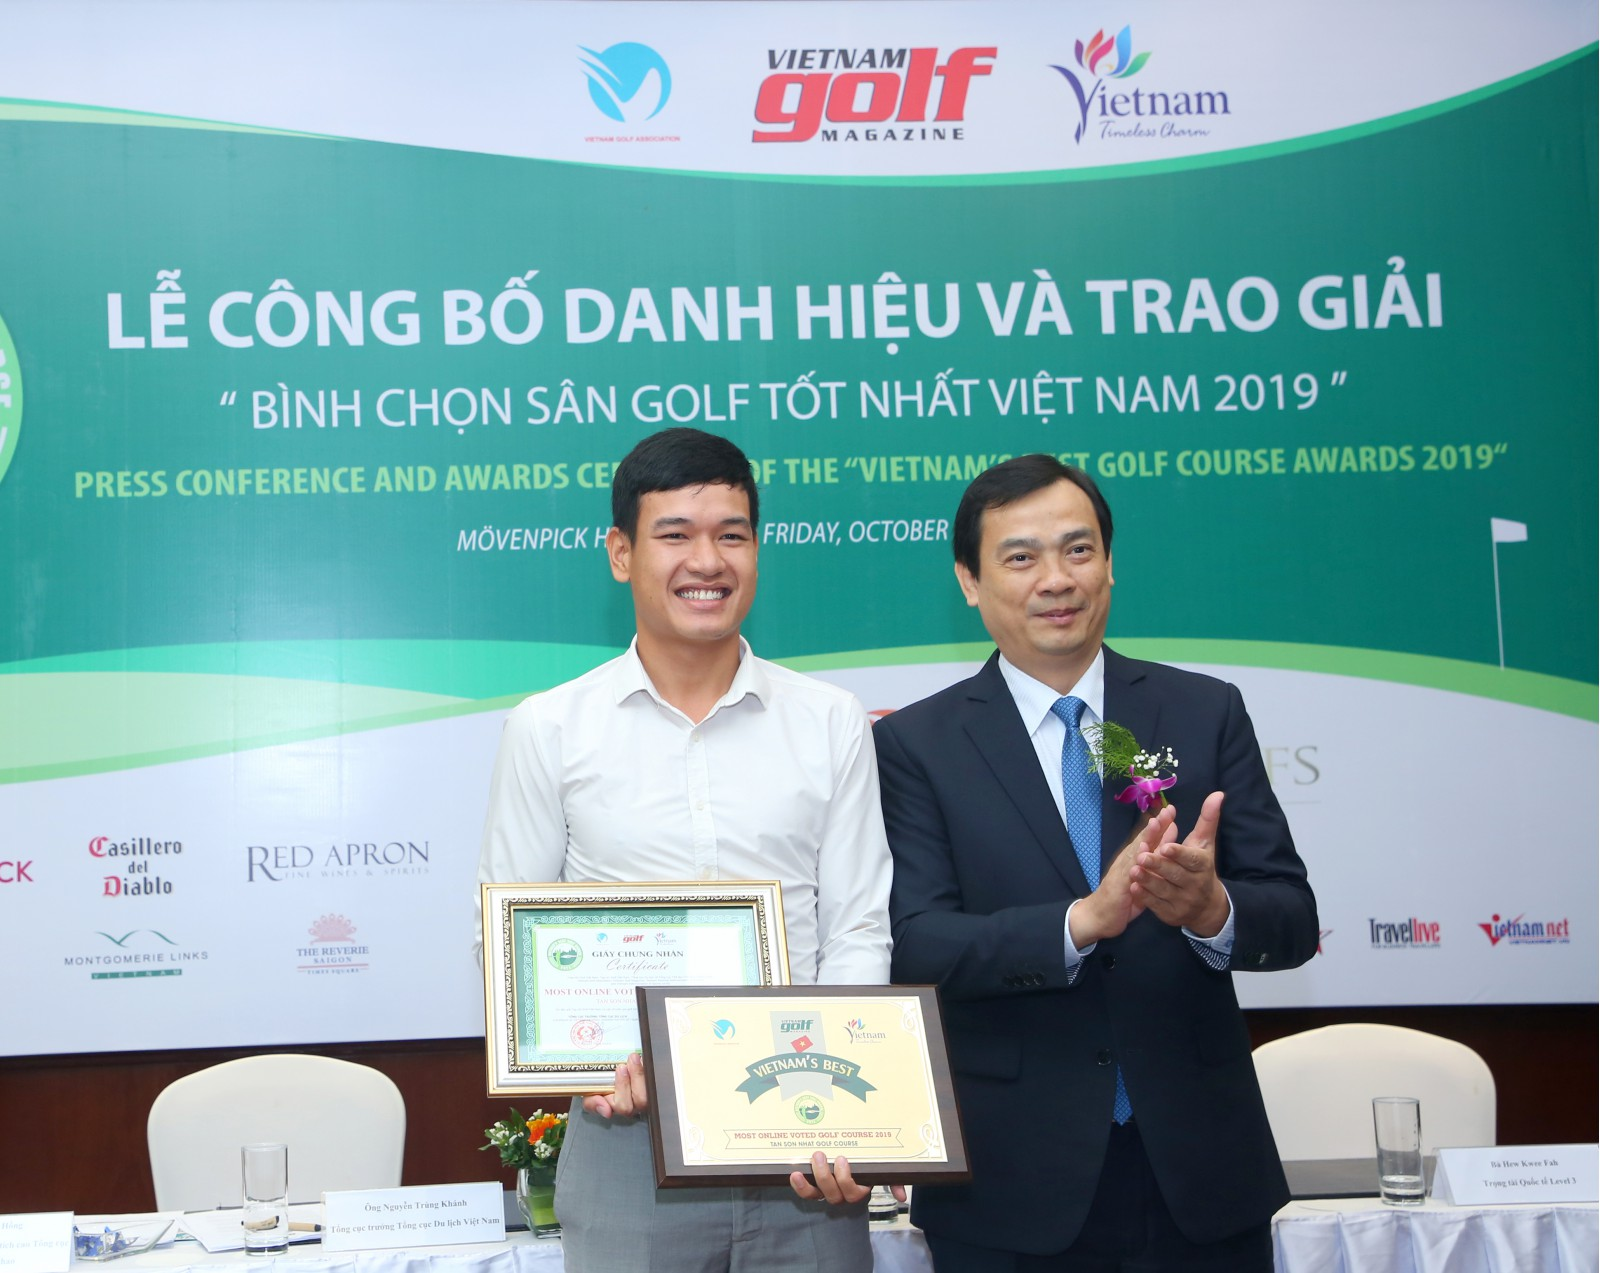 MOST ONLINE VOTED GOLF COURSE 2019 - Tan Son Nhat Golf Course